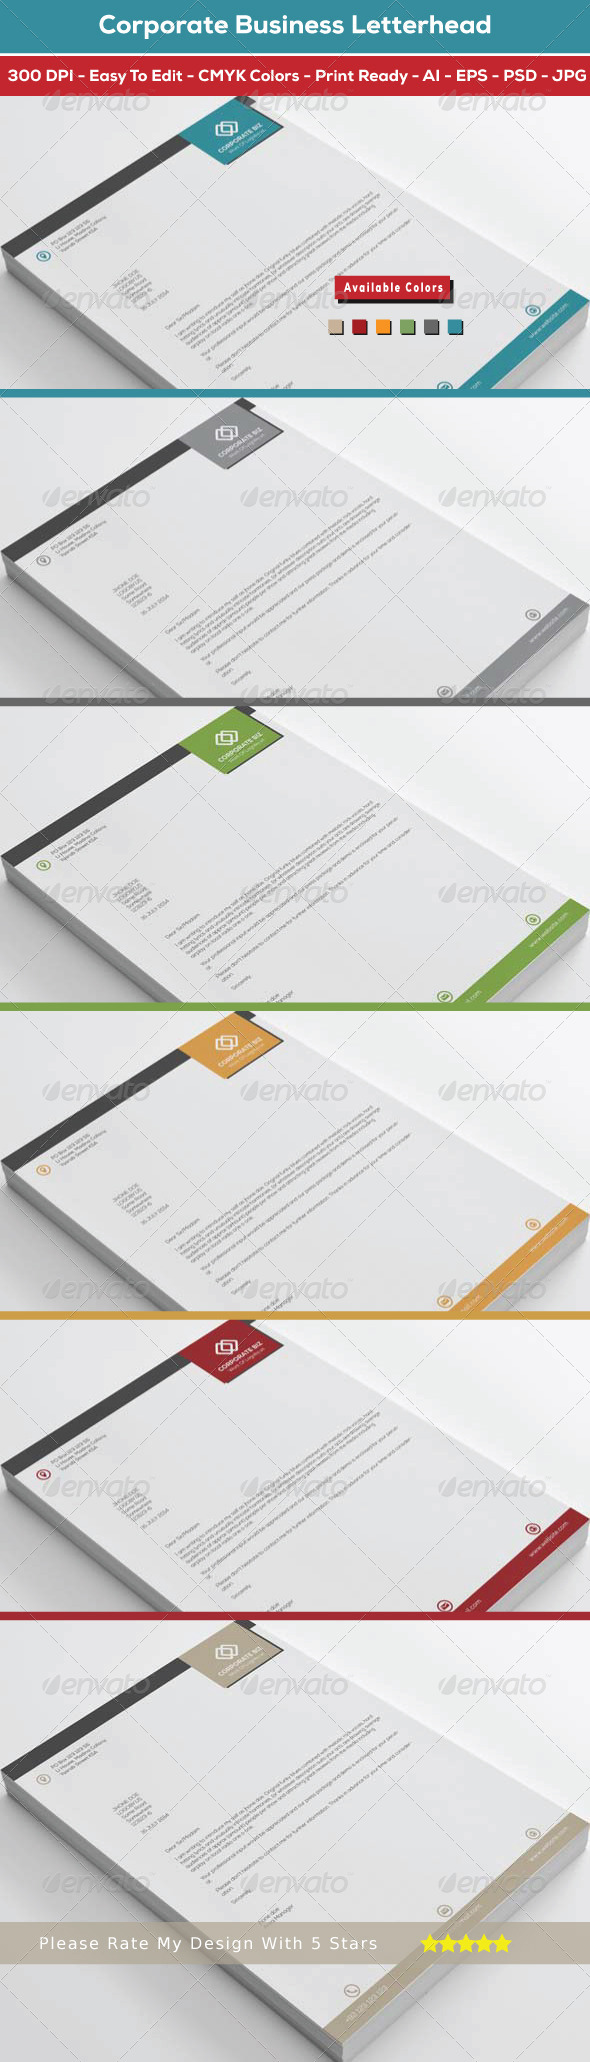 GraphicRiver Corporate Business Letterhead 8533589